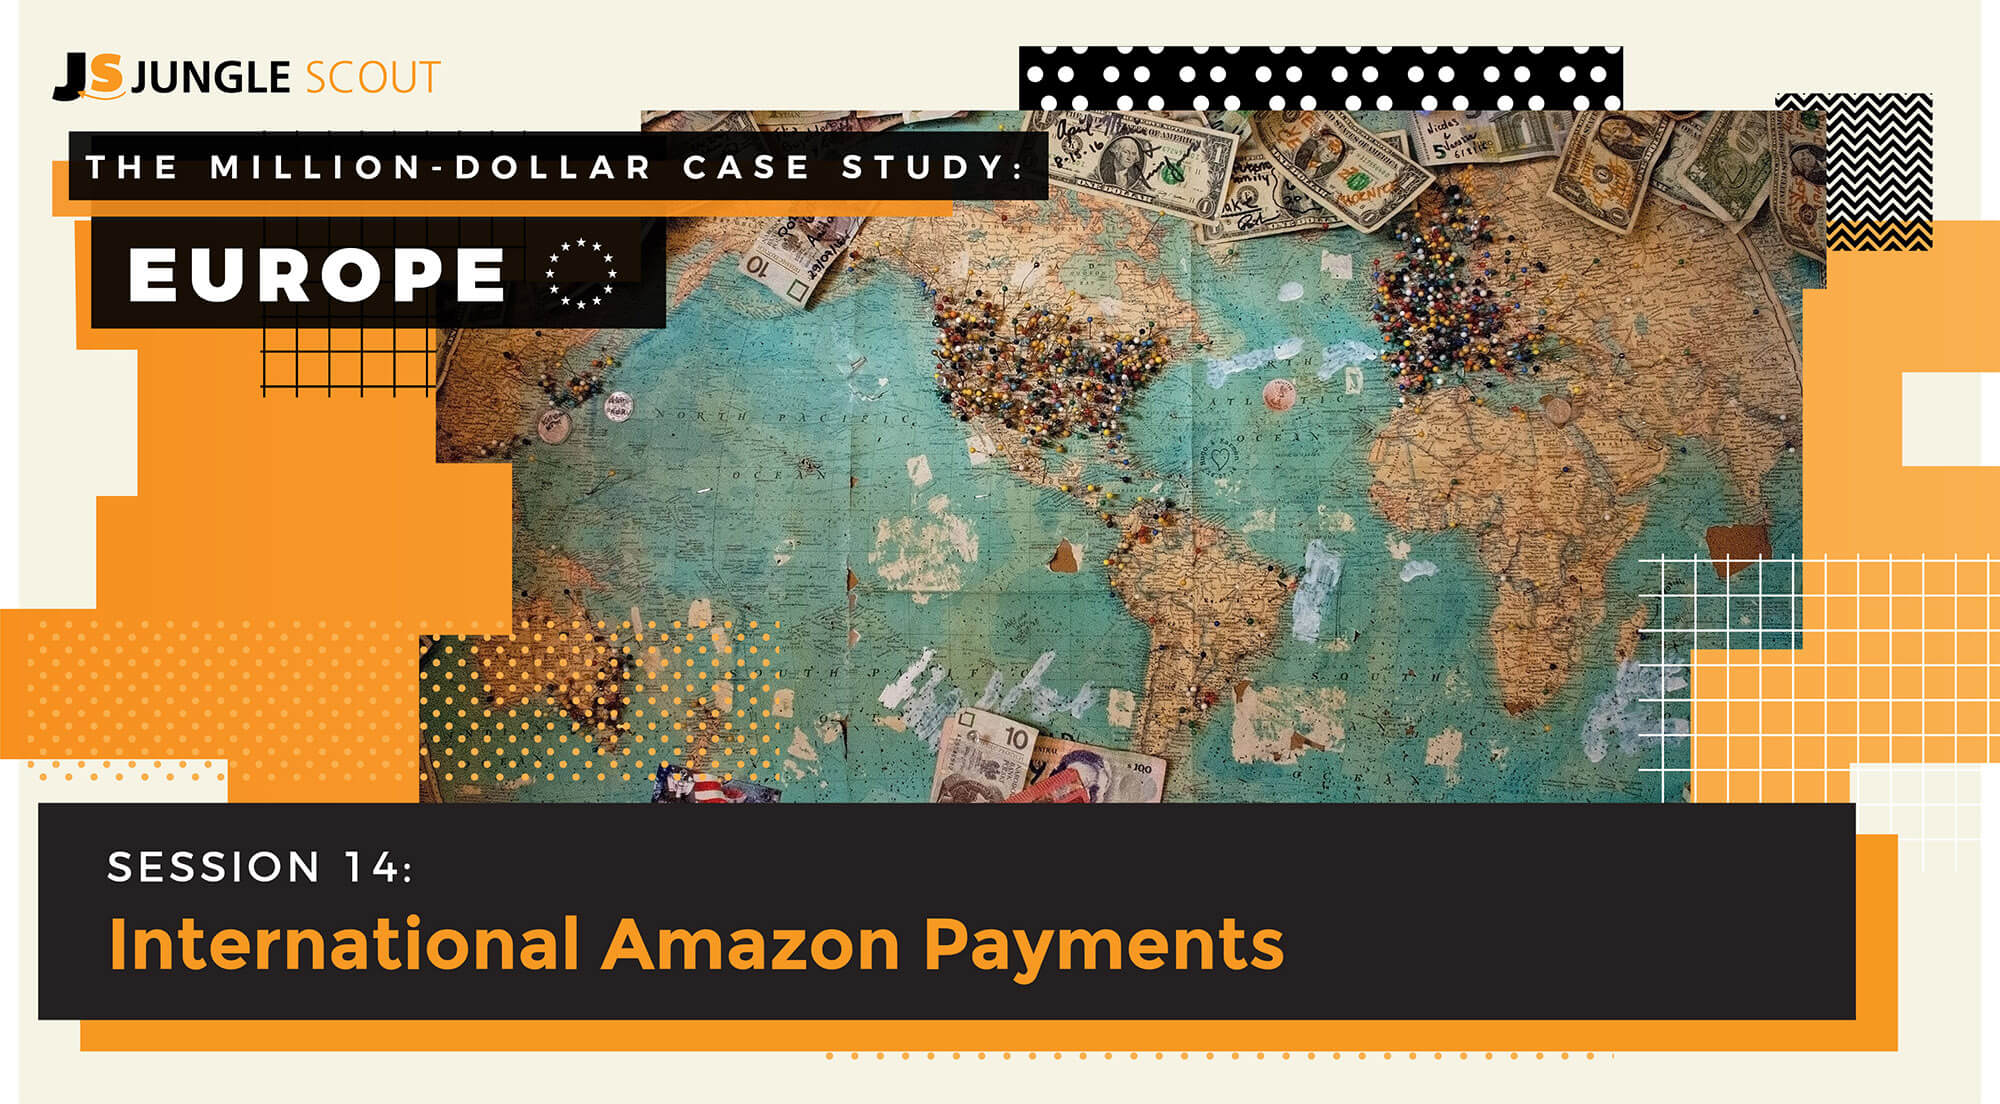 International Amazon Payments